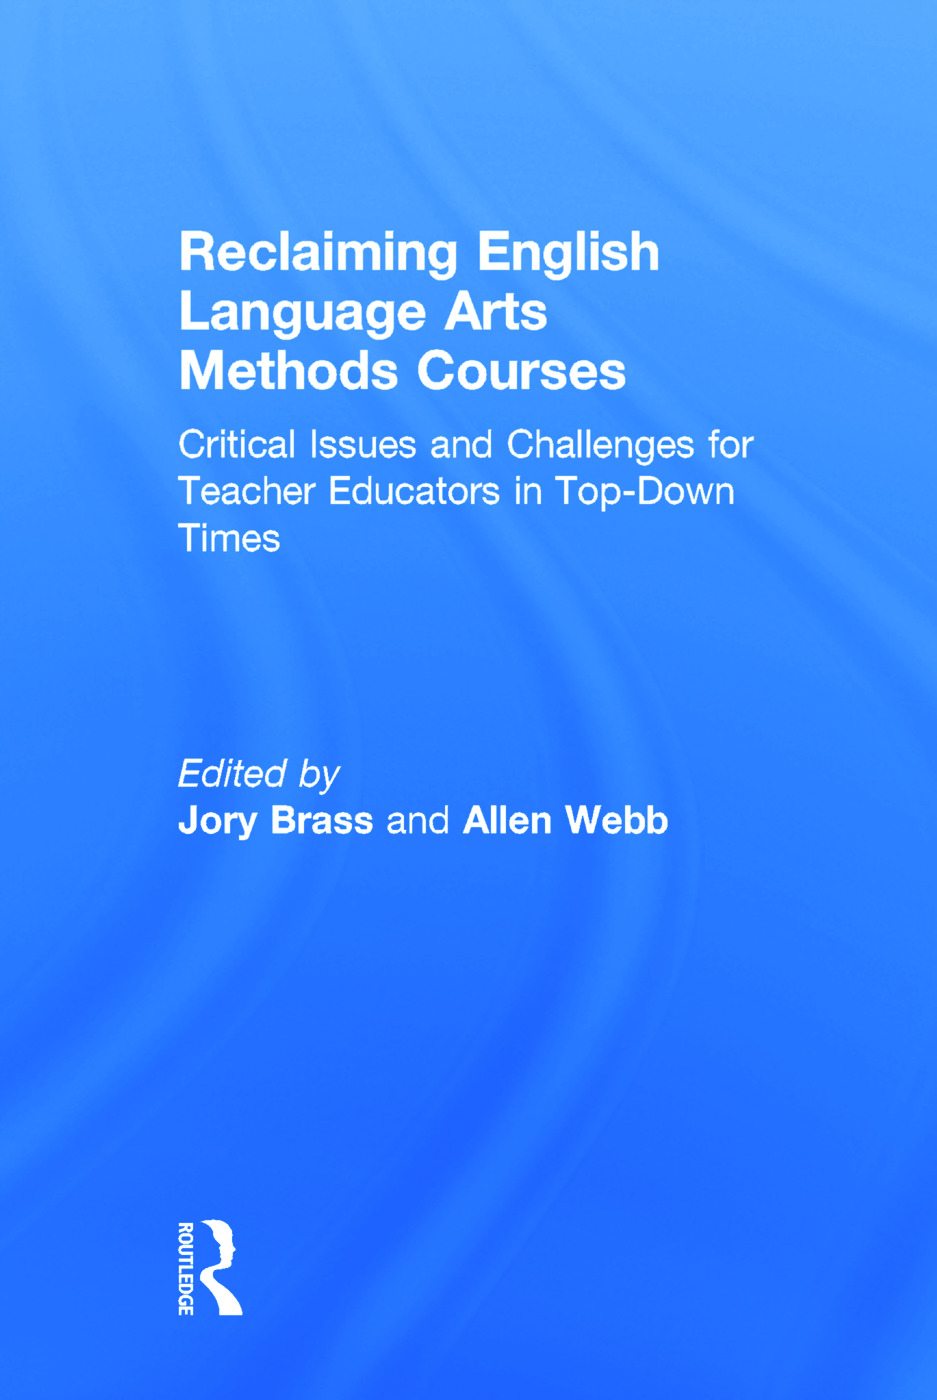 Reclaiming English Language Arts Methods Courses: Critical Issues and Challenges for Teacher Educators in Top-Down Times, 1st Edition (Hardback) book cover